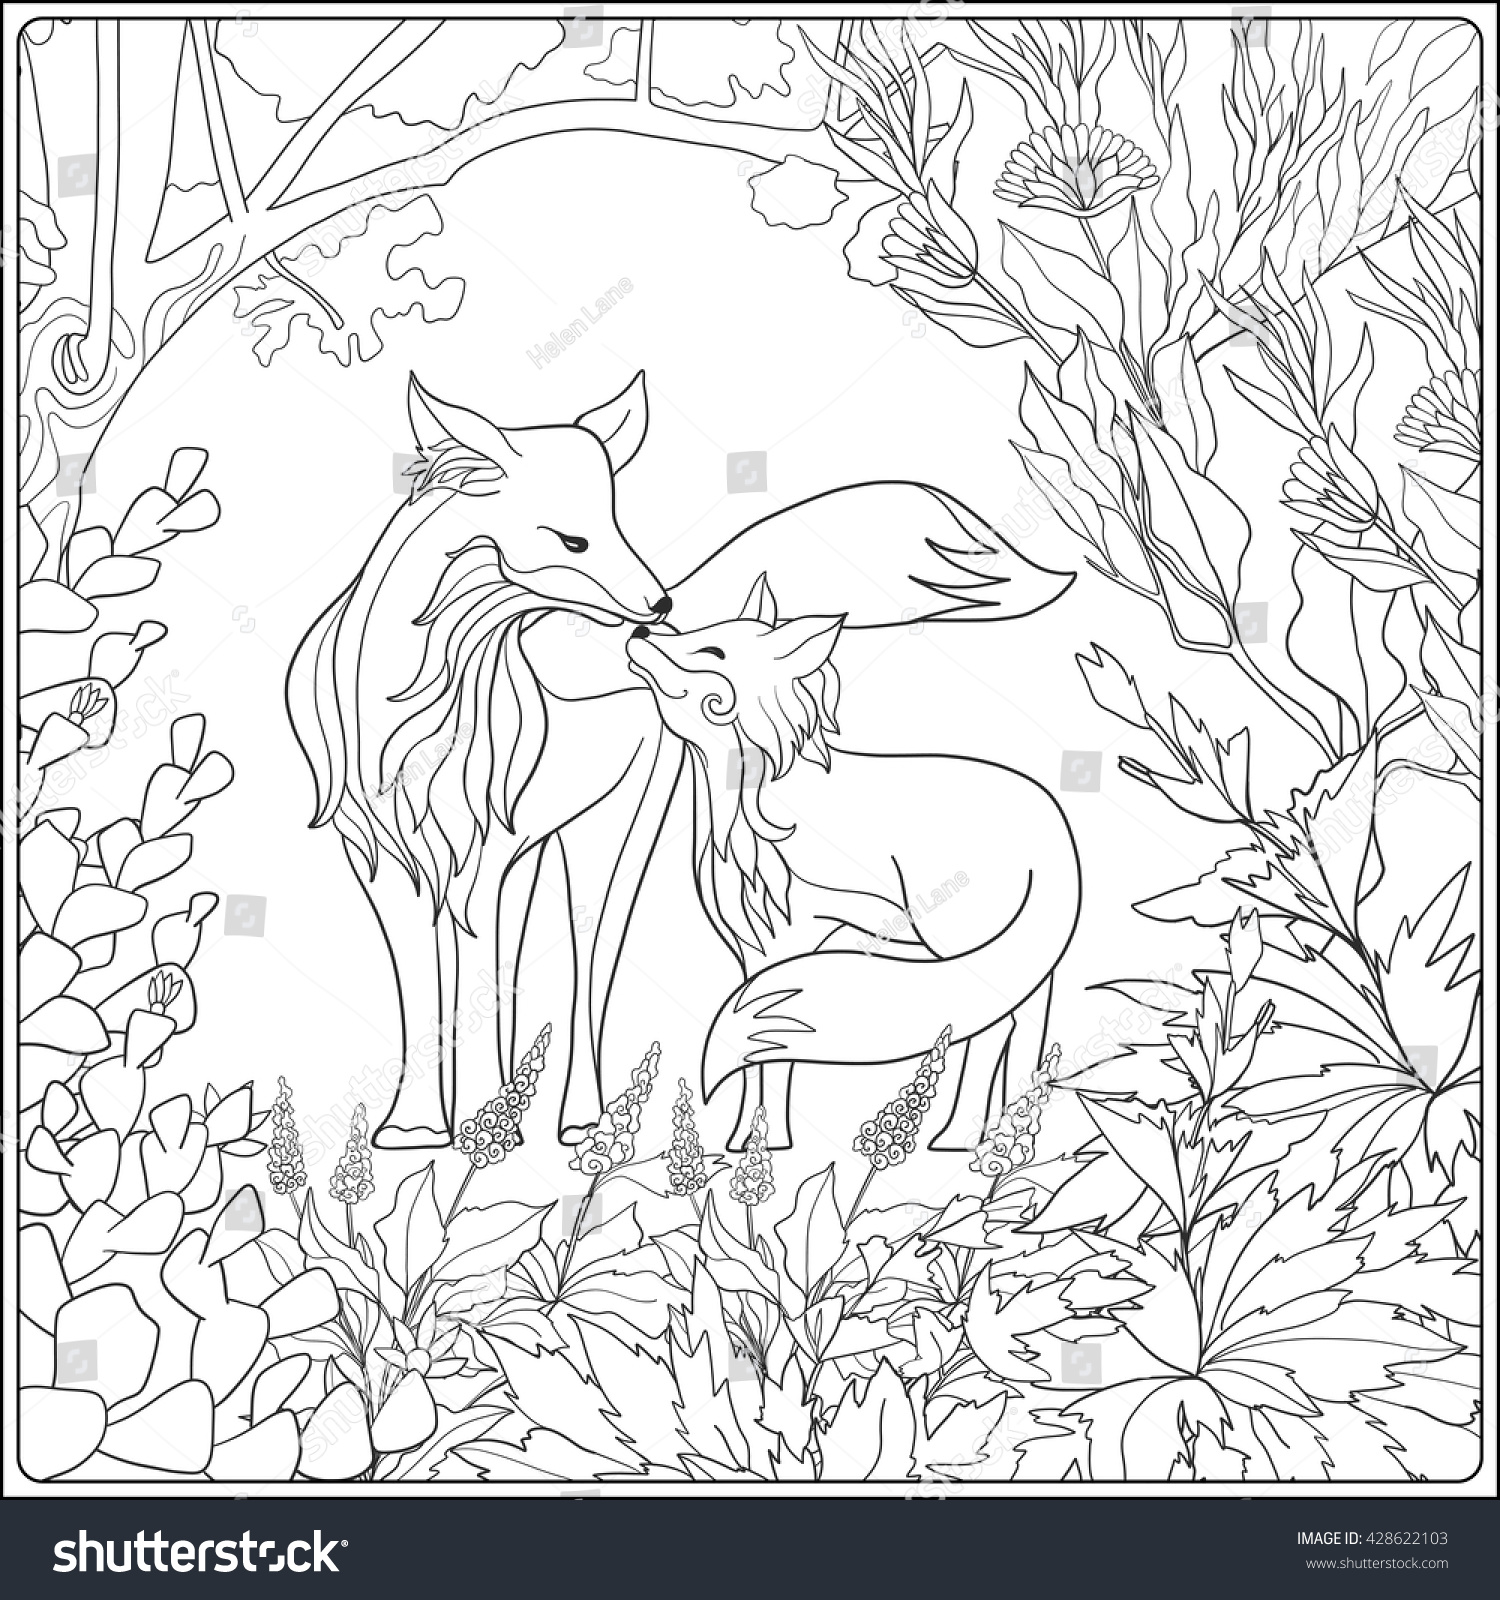 Coloring Book For Adult And Older Children Page With Lovely Mother Fox Her